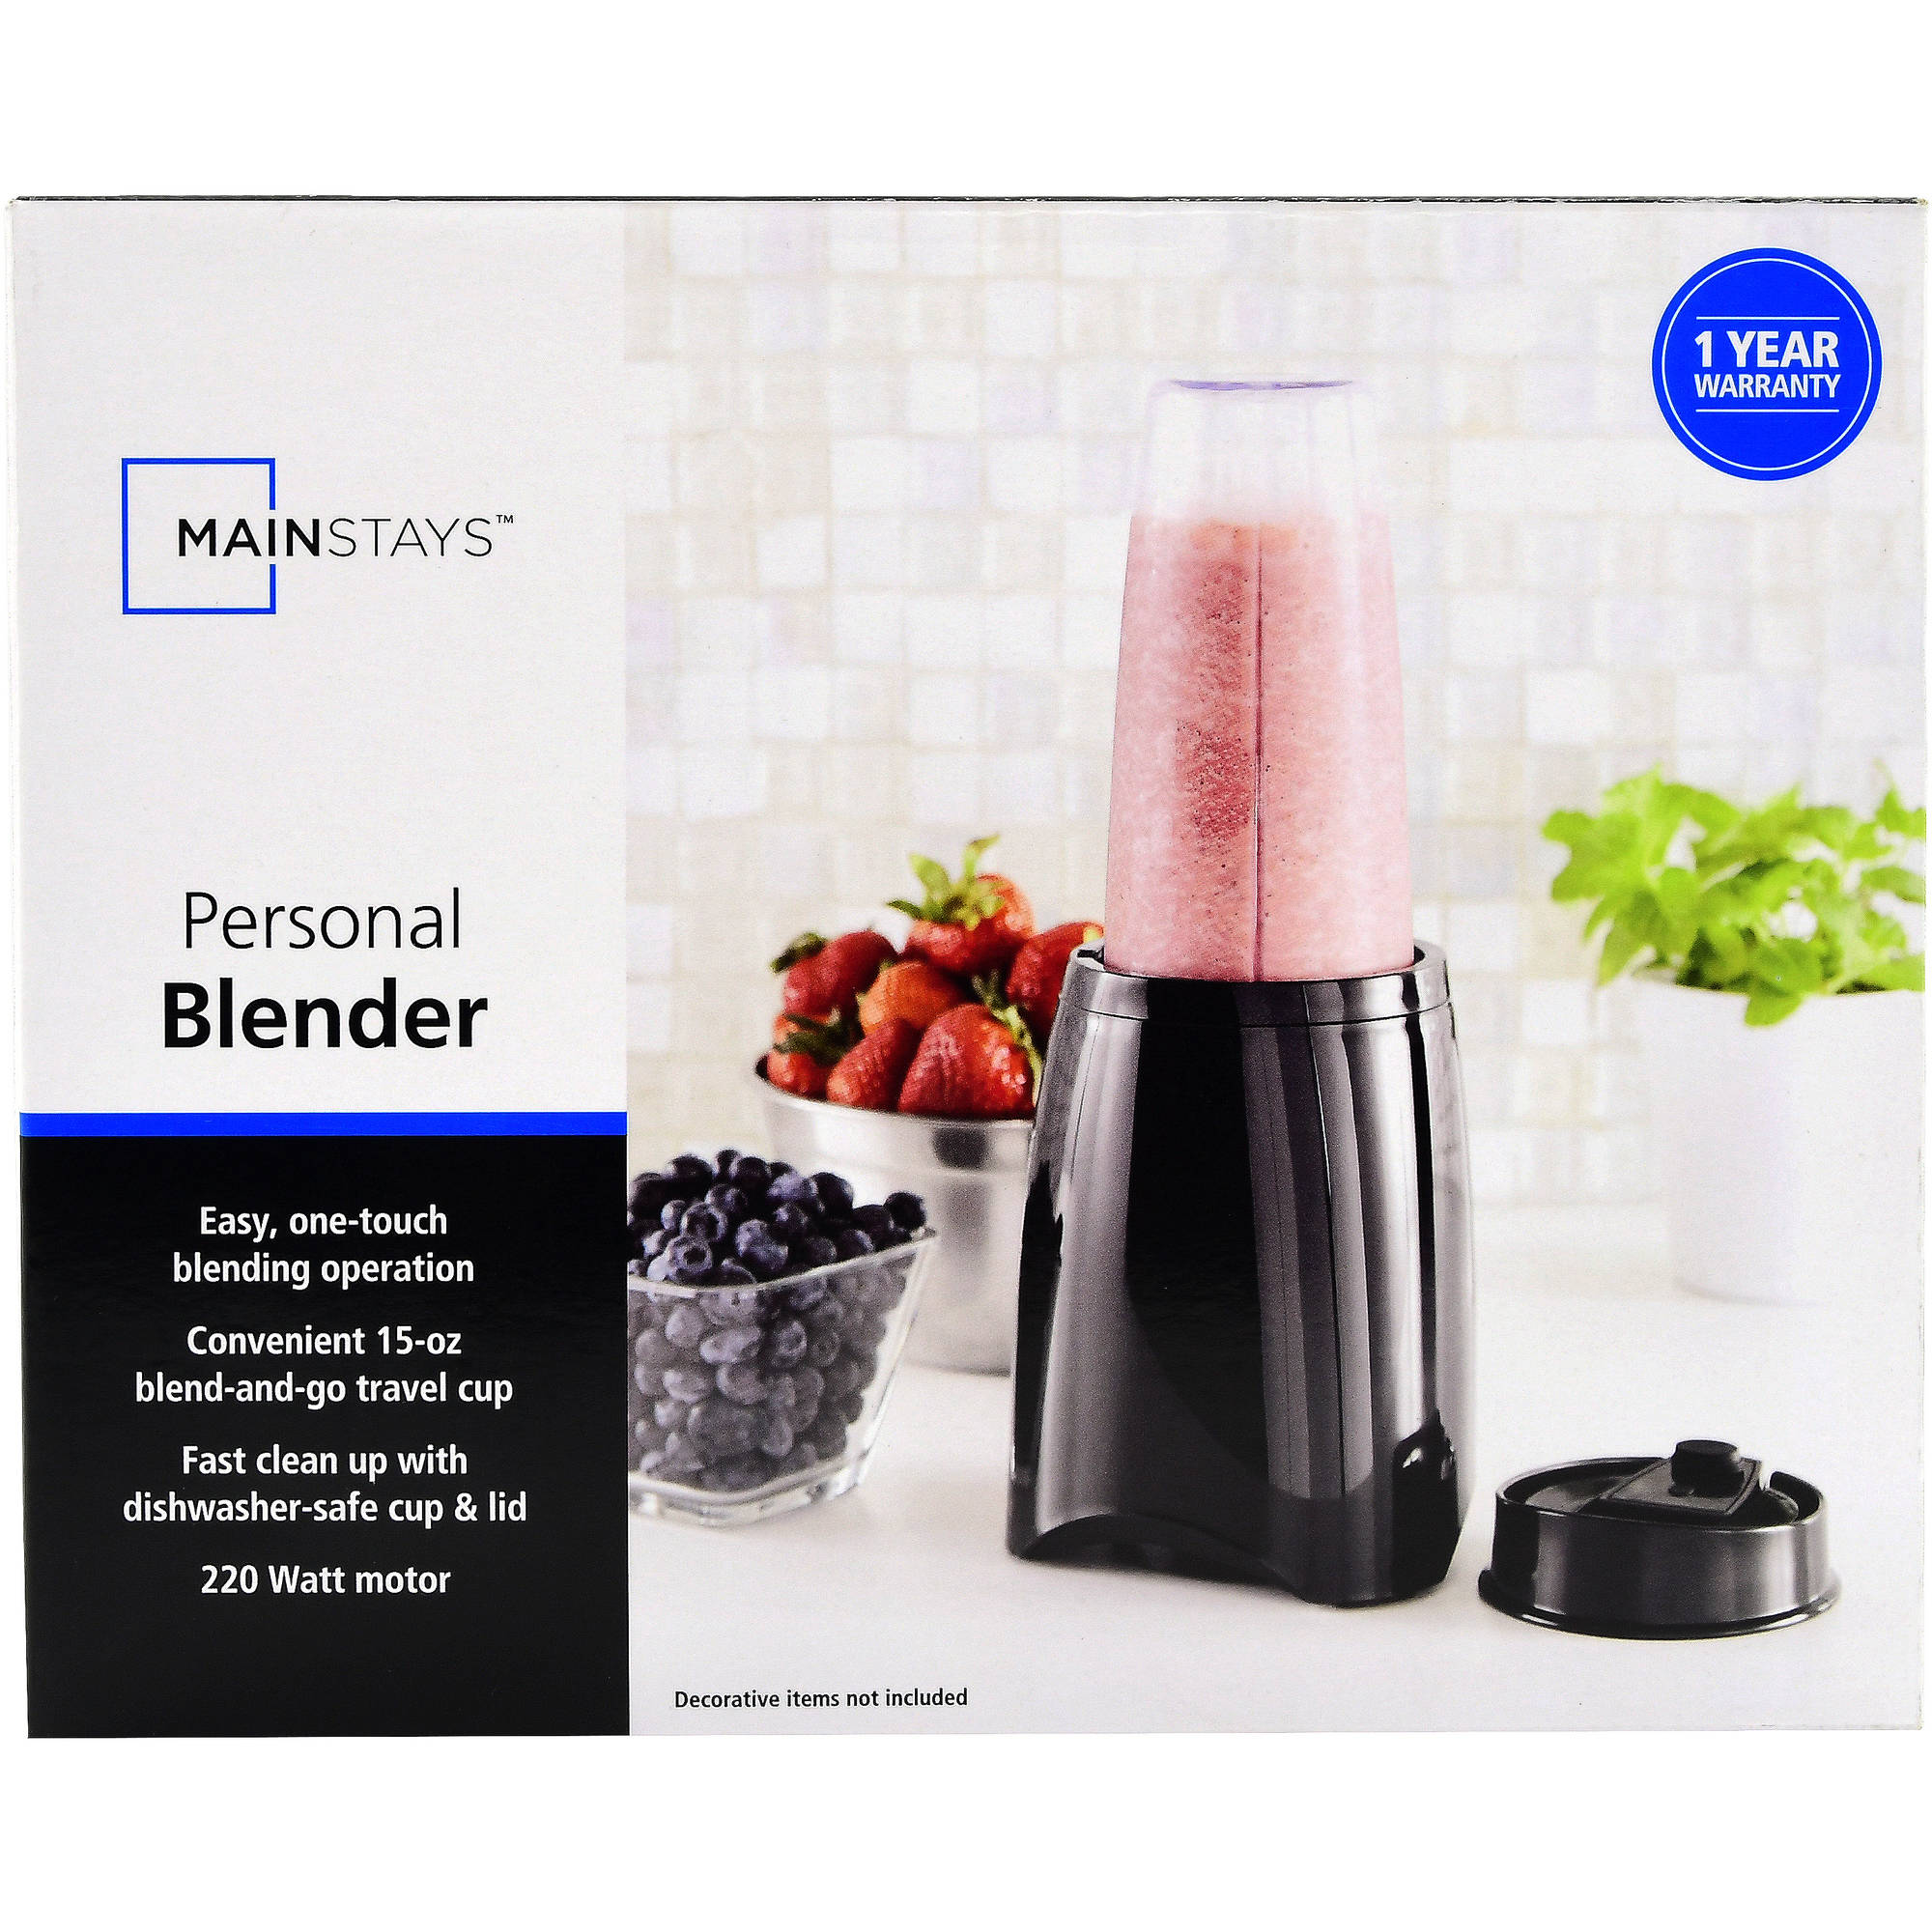 Mainstays Personal Blender, Black